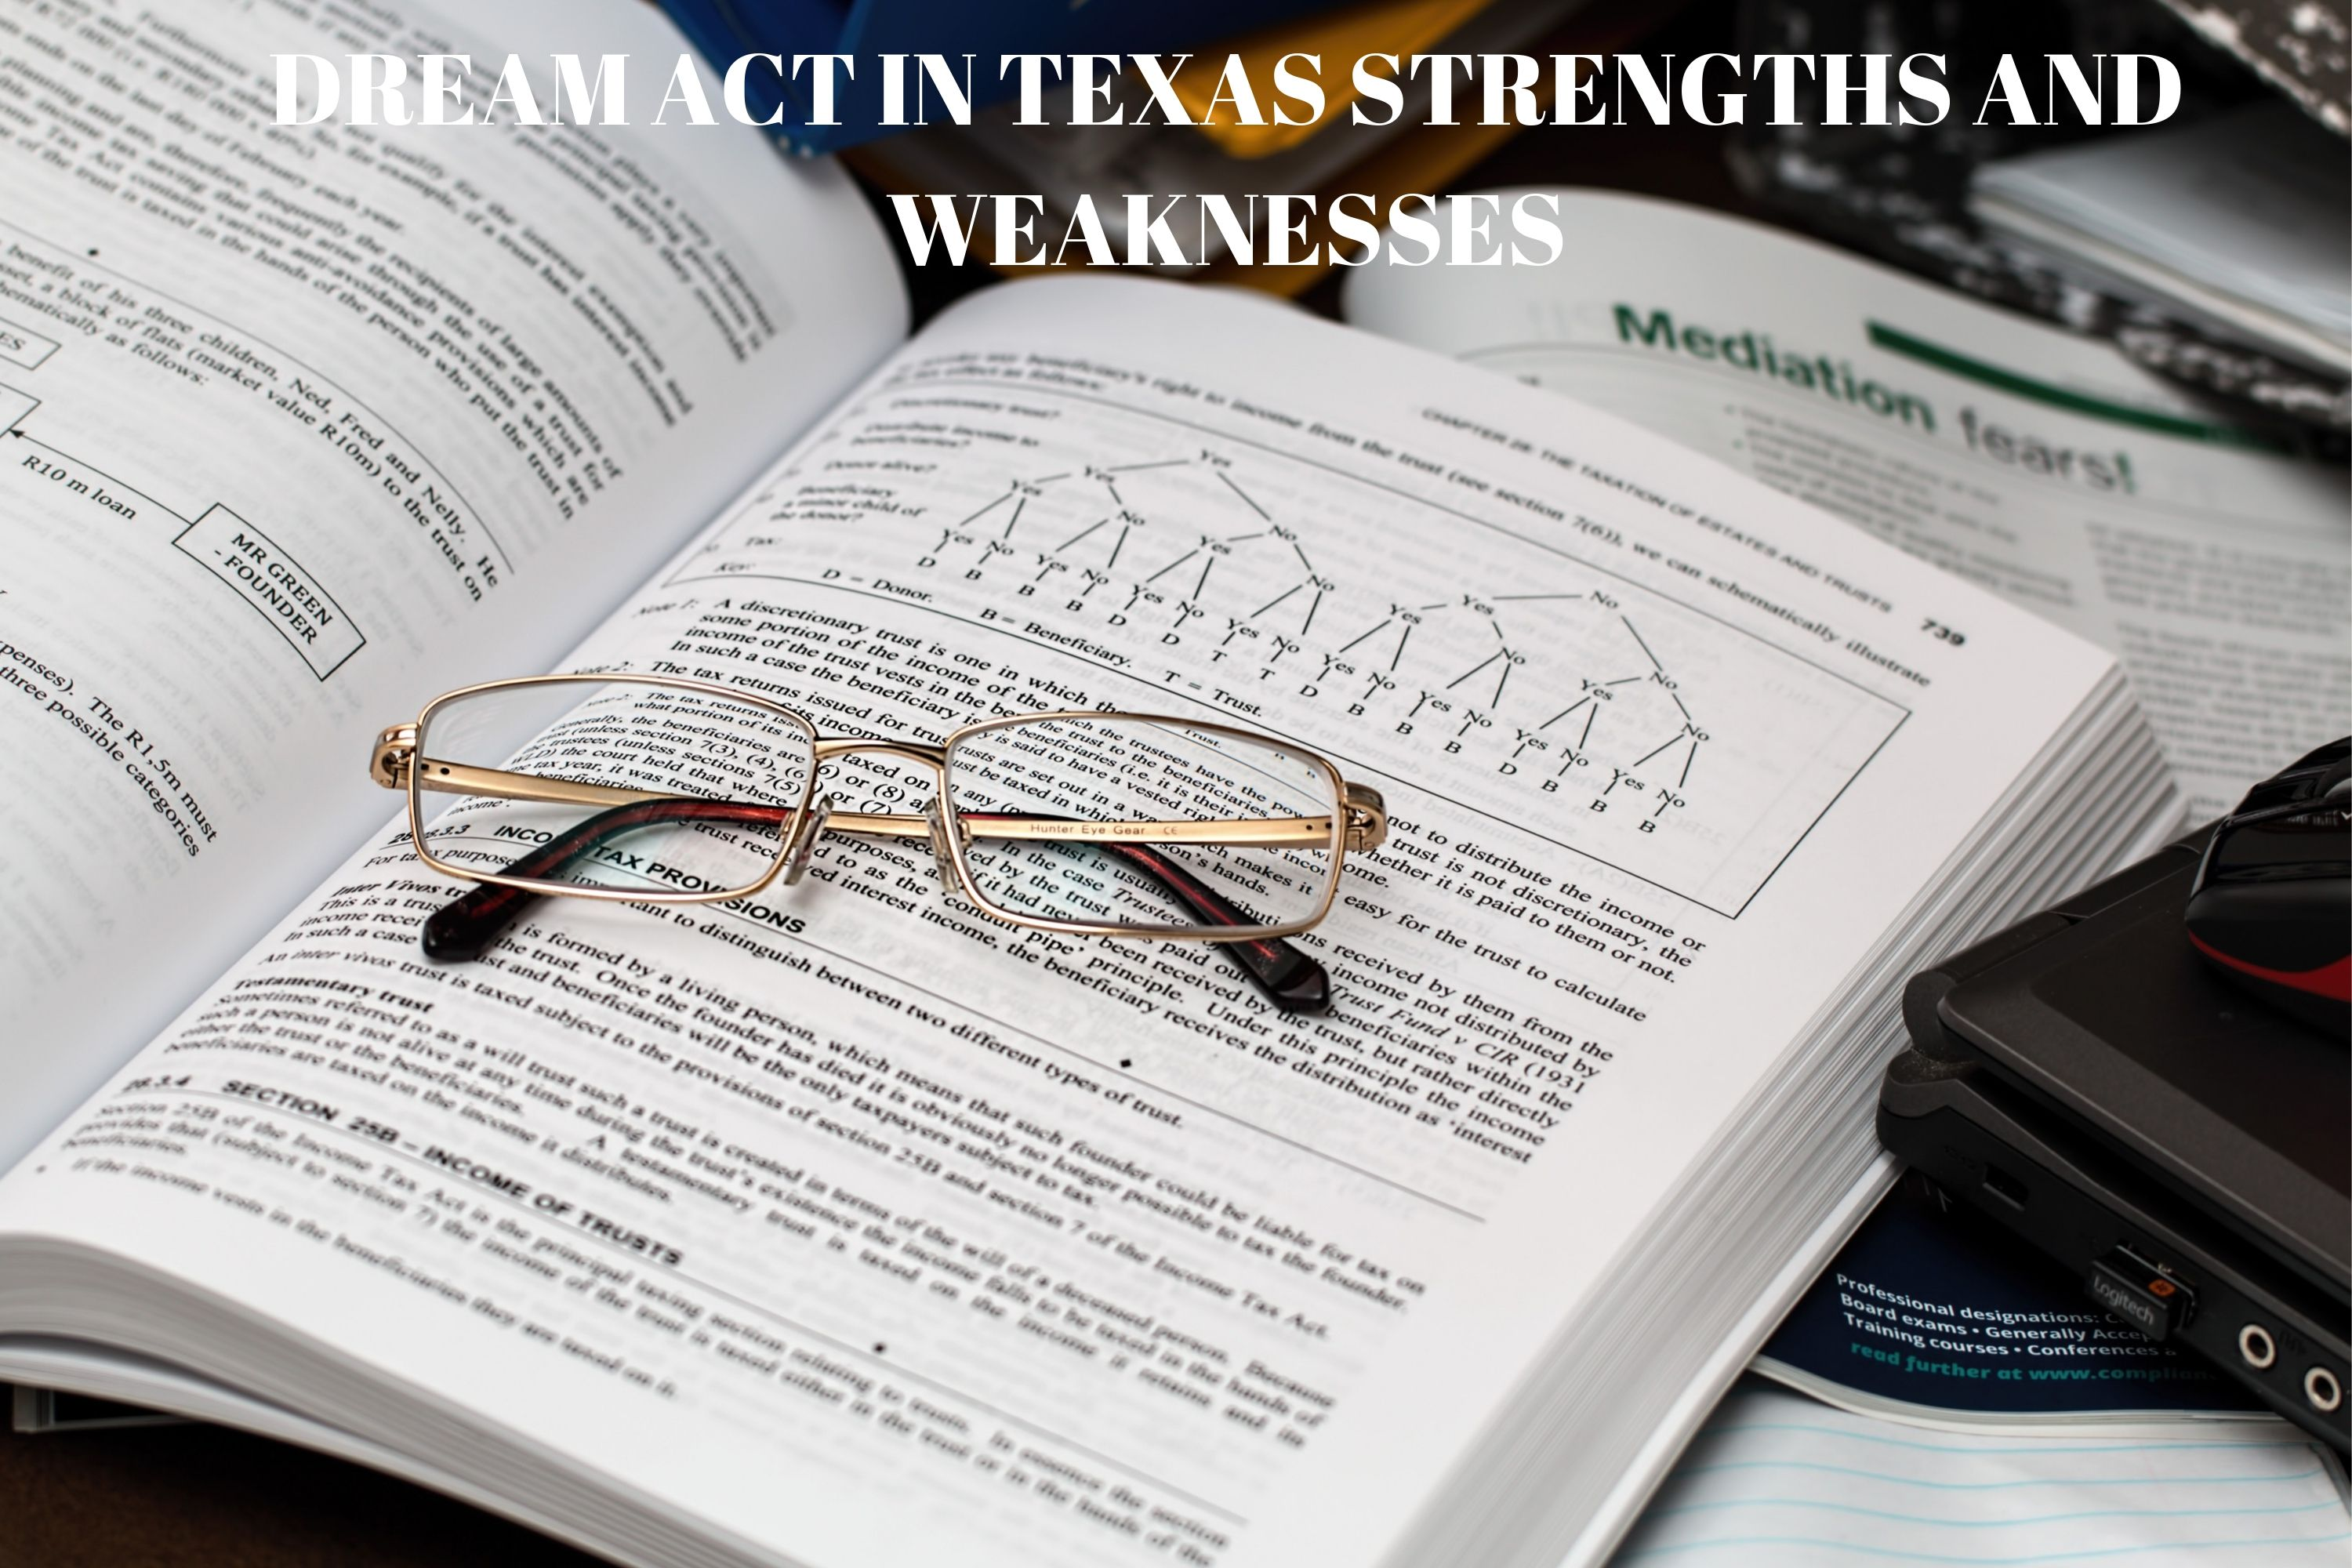 Dream Act in Texas Strengths and Weaknesses